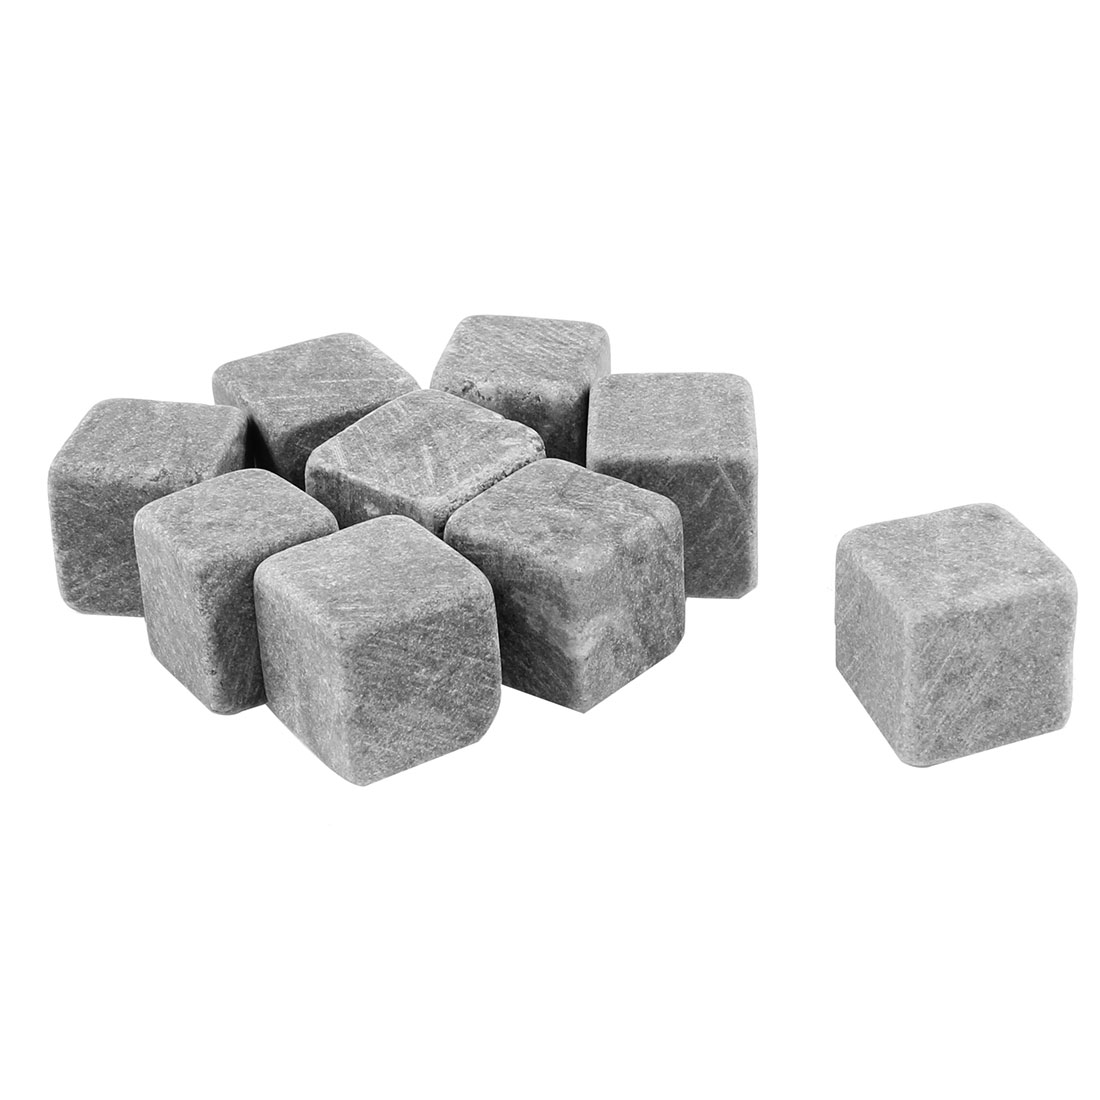 9 in 1 Gray Ceramic Ice Cube Whisky Scotch Chilling Stones 20mmx20mmx20mm